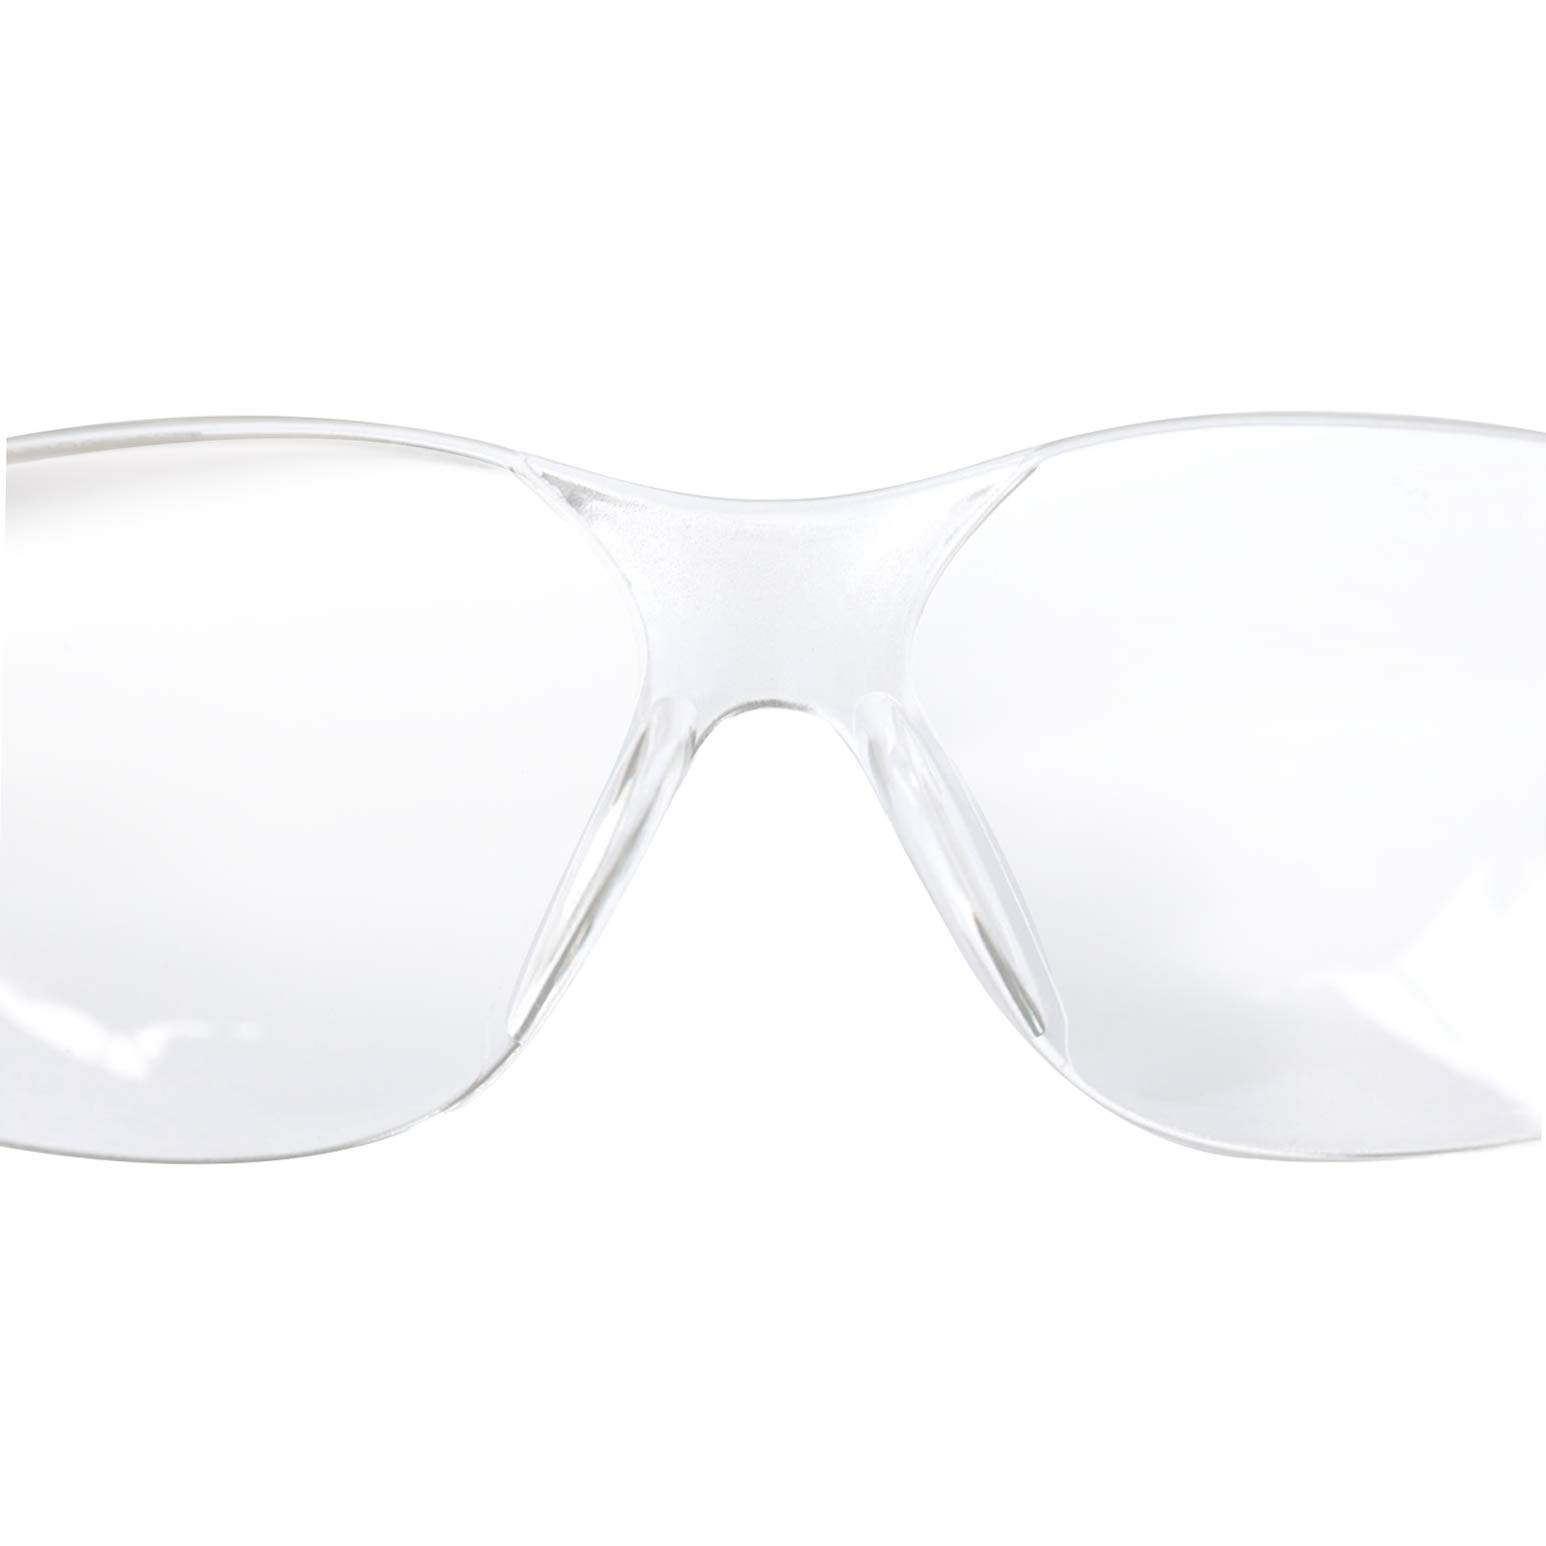 BISON LIFE Safety Glasses | One Size, Clear Protective Polycarbonate Lens, Clear Temple, 12 per Box (Case of 12 boxes, 144 pairs total) by BISON LIFE (Image #4)